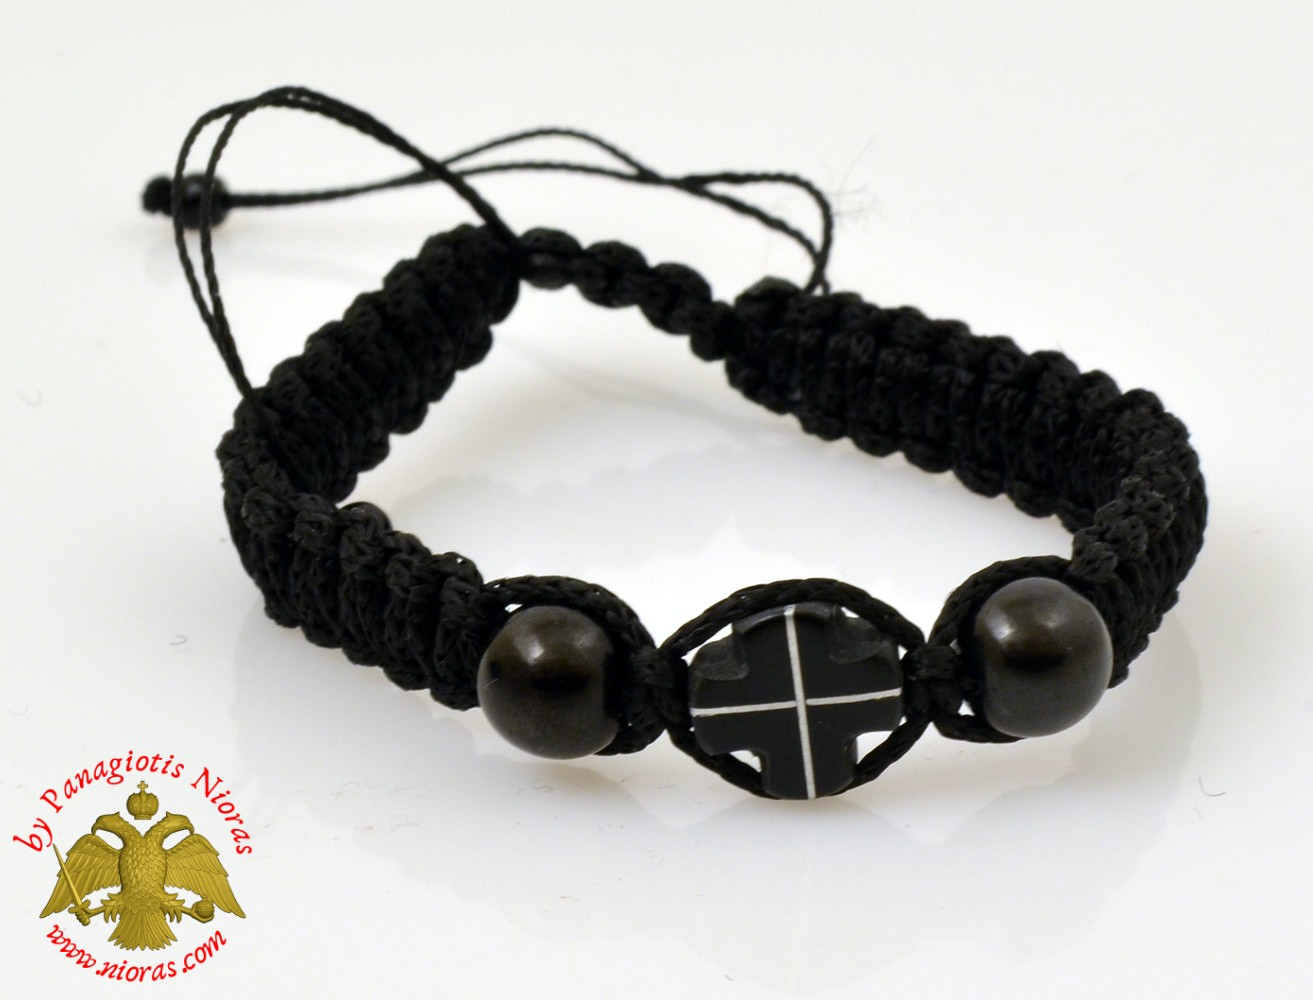 Hand Wrist Praying Rope with Wooden Black Cross